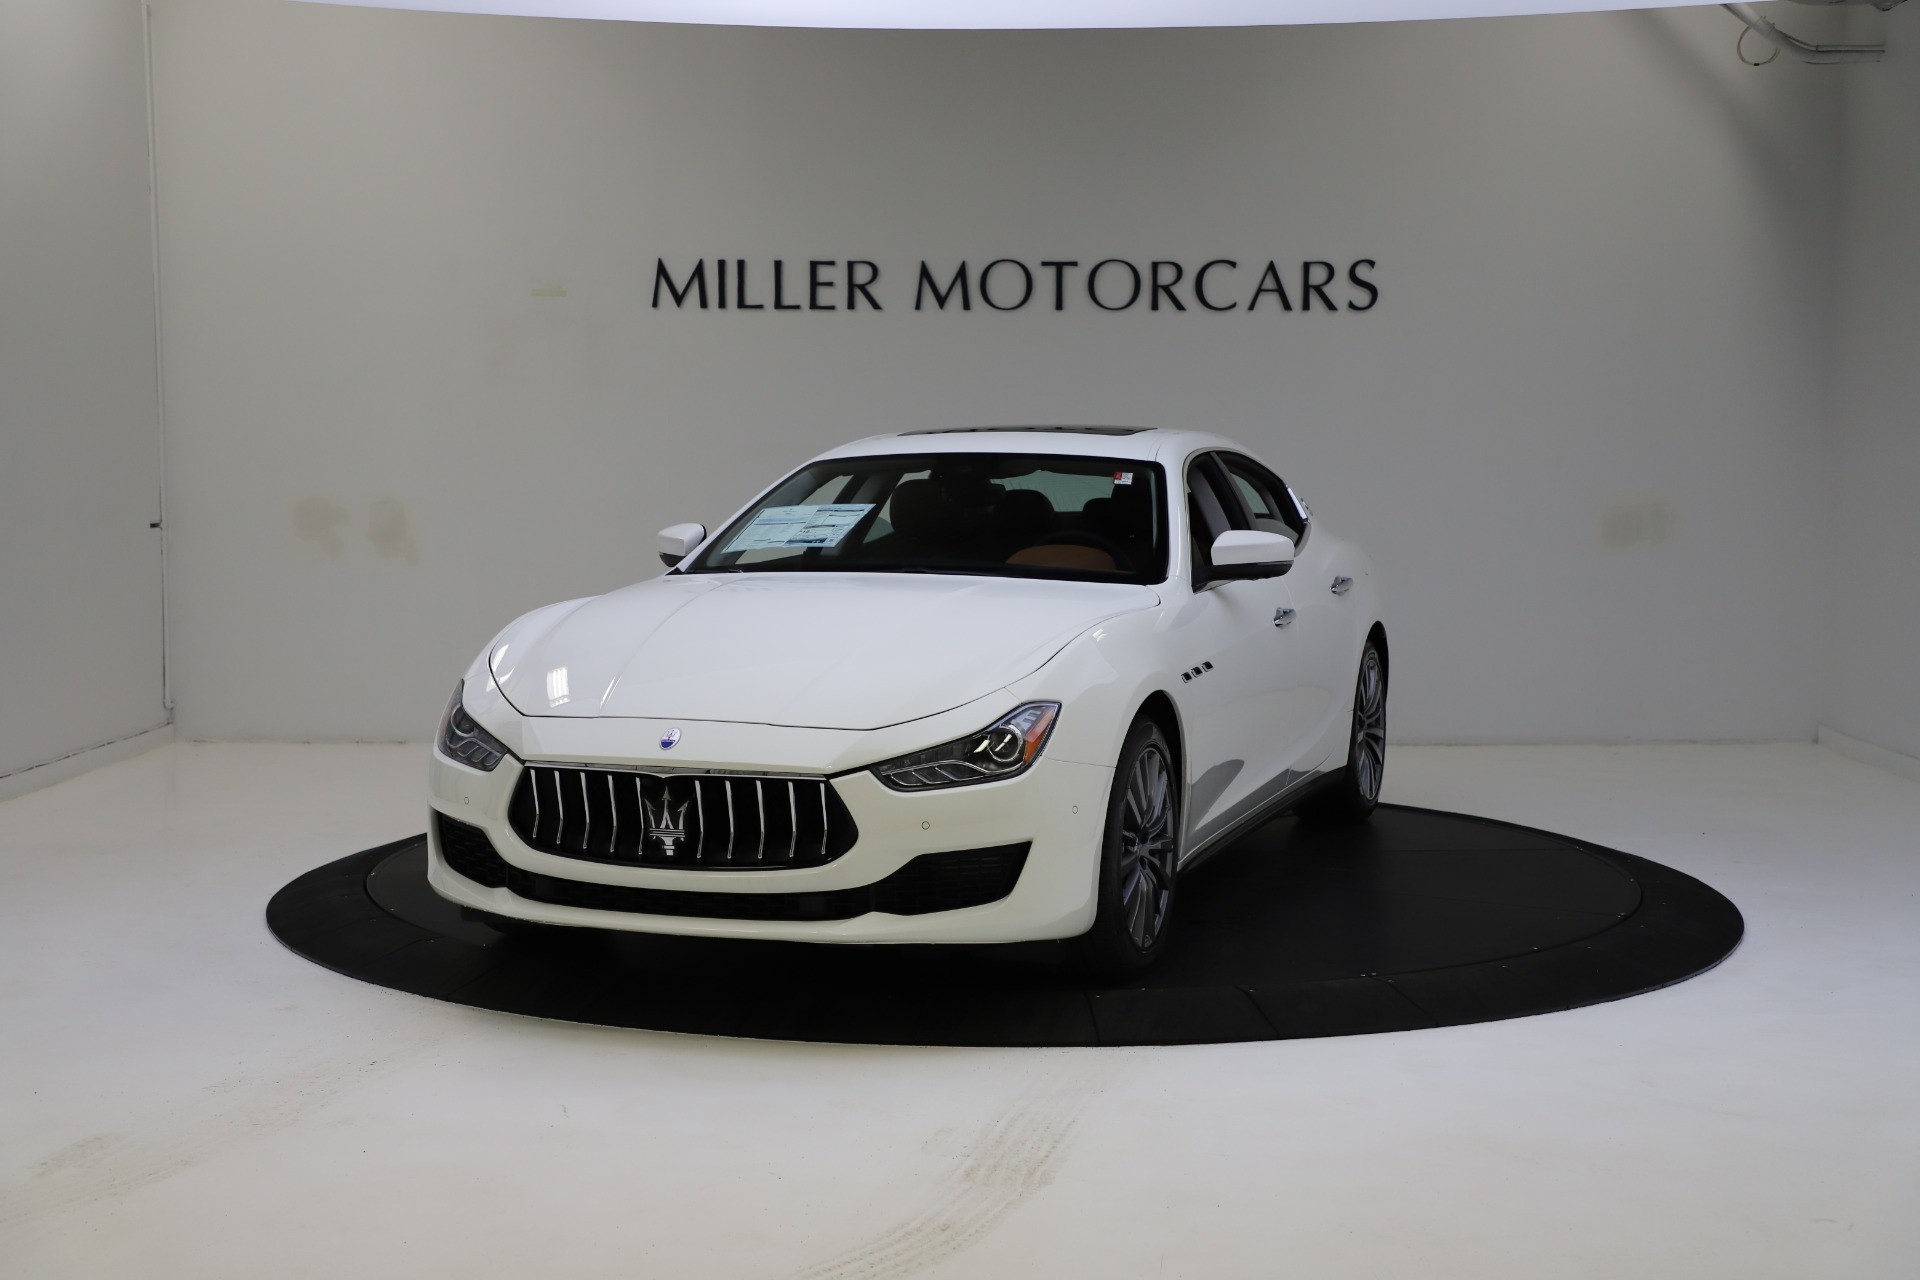 New 2021 Maserati Ghibli S Q4 for sale $85,754 at Rolls-Royce Motor Cars Greenwich in Greenwich CT 06830 1